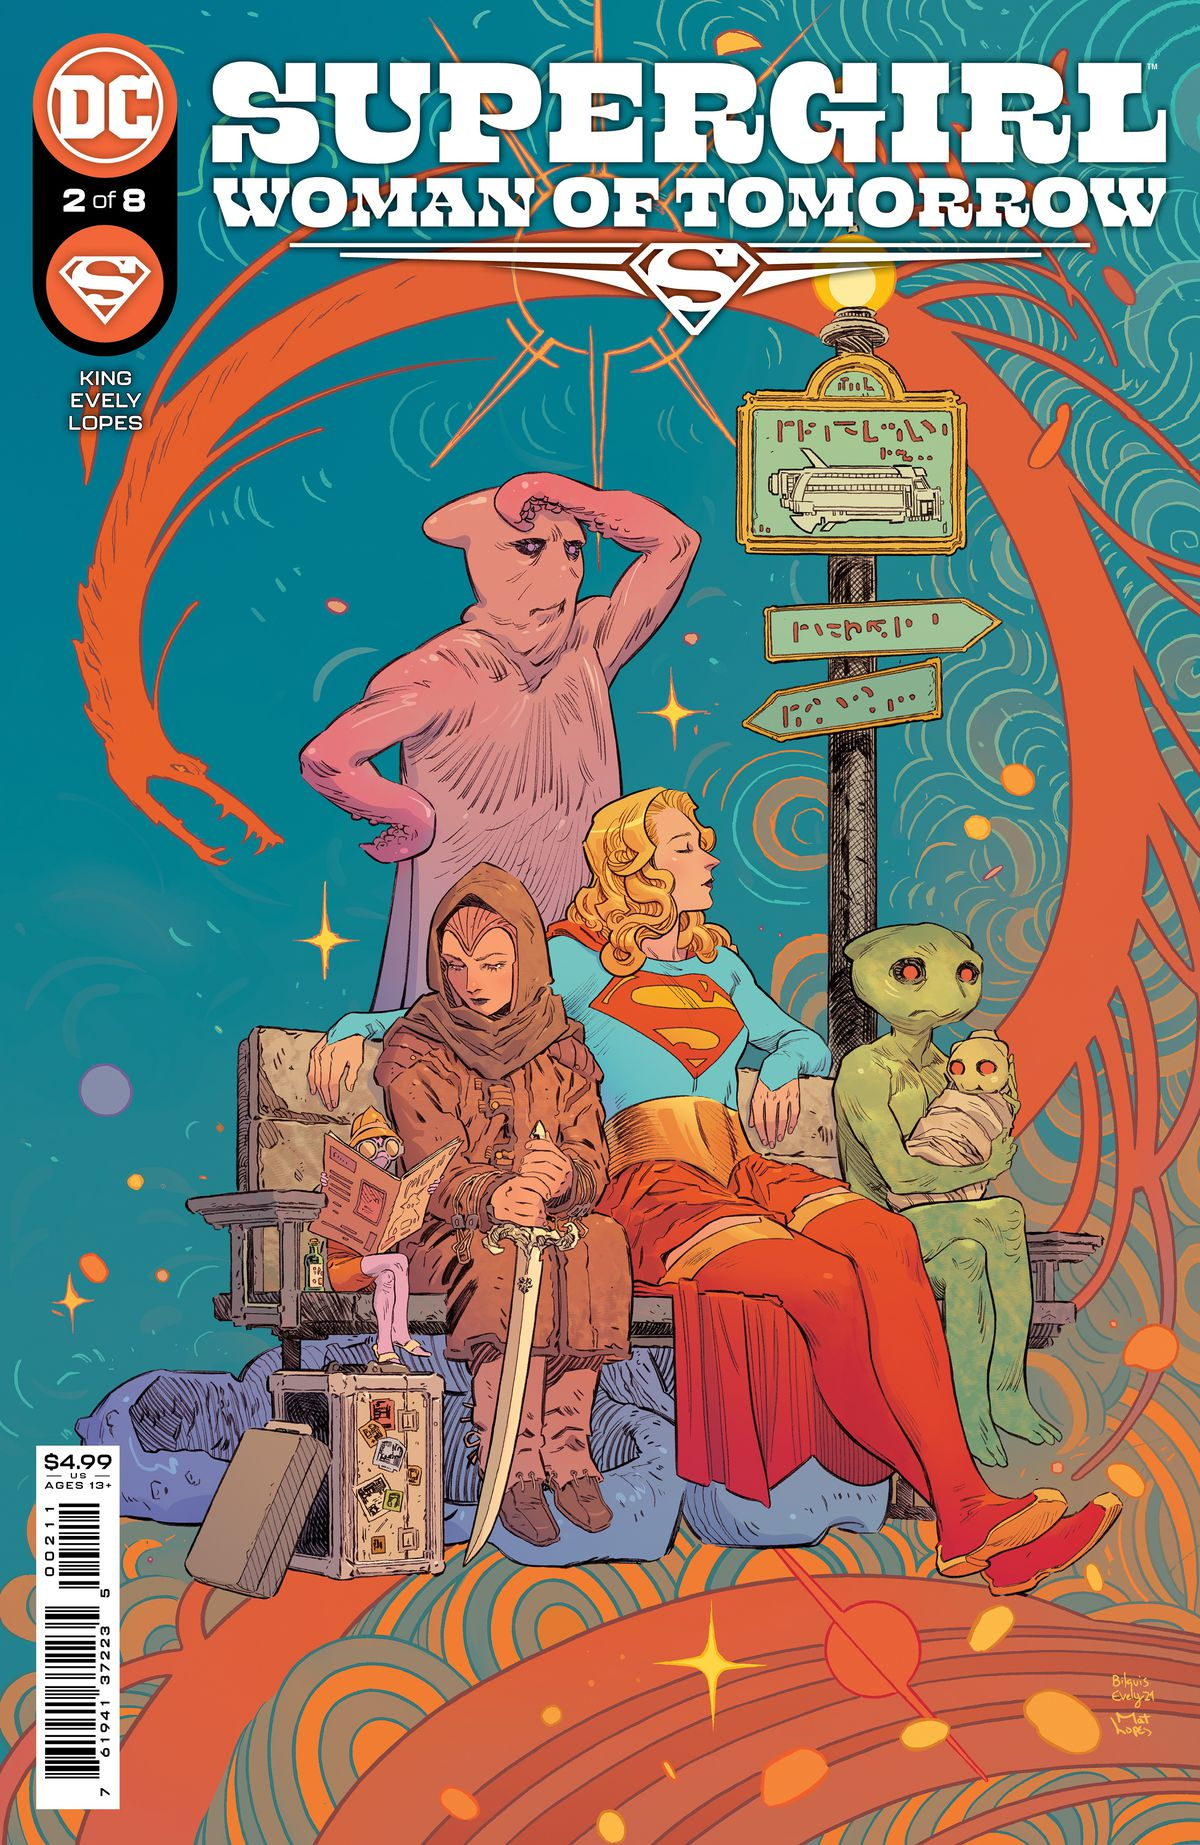 Supergirl waits at a bus stop with aliens on the cover of Supergirl: Woman of Tomorrow #2, DC Comics (2021).